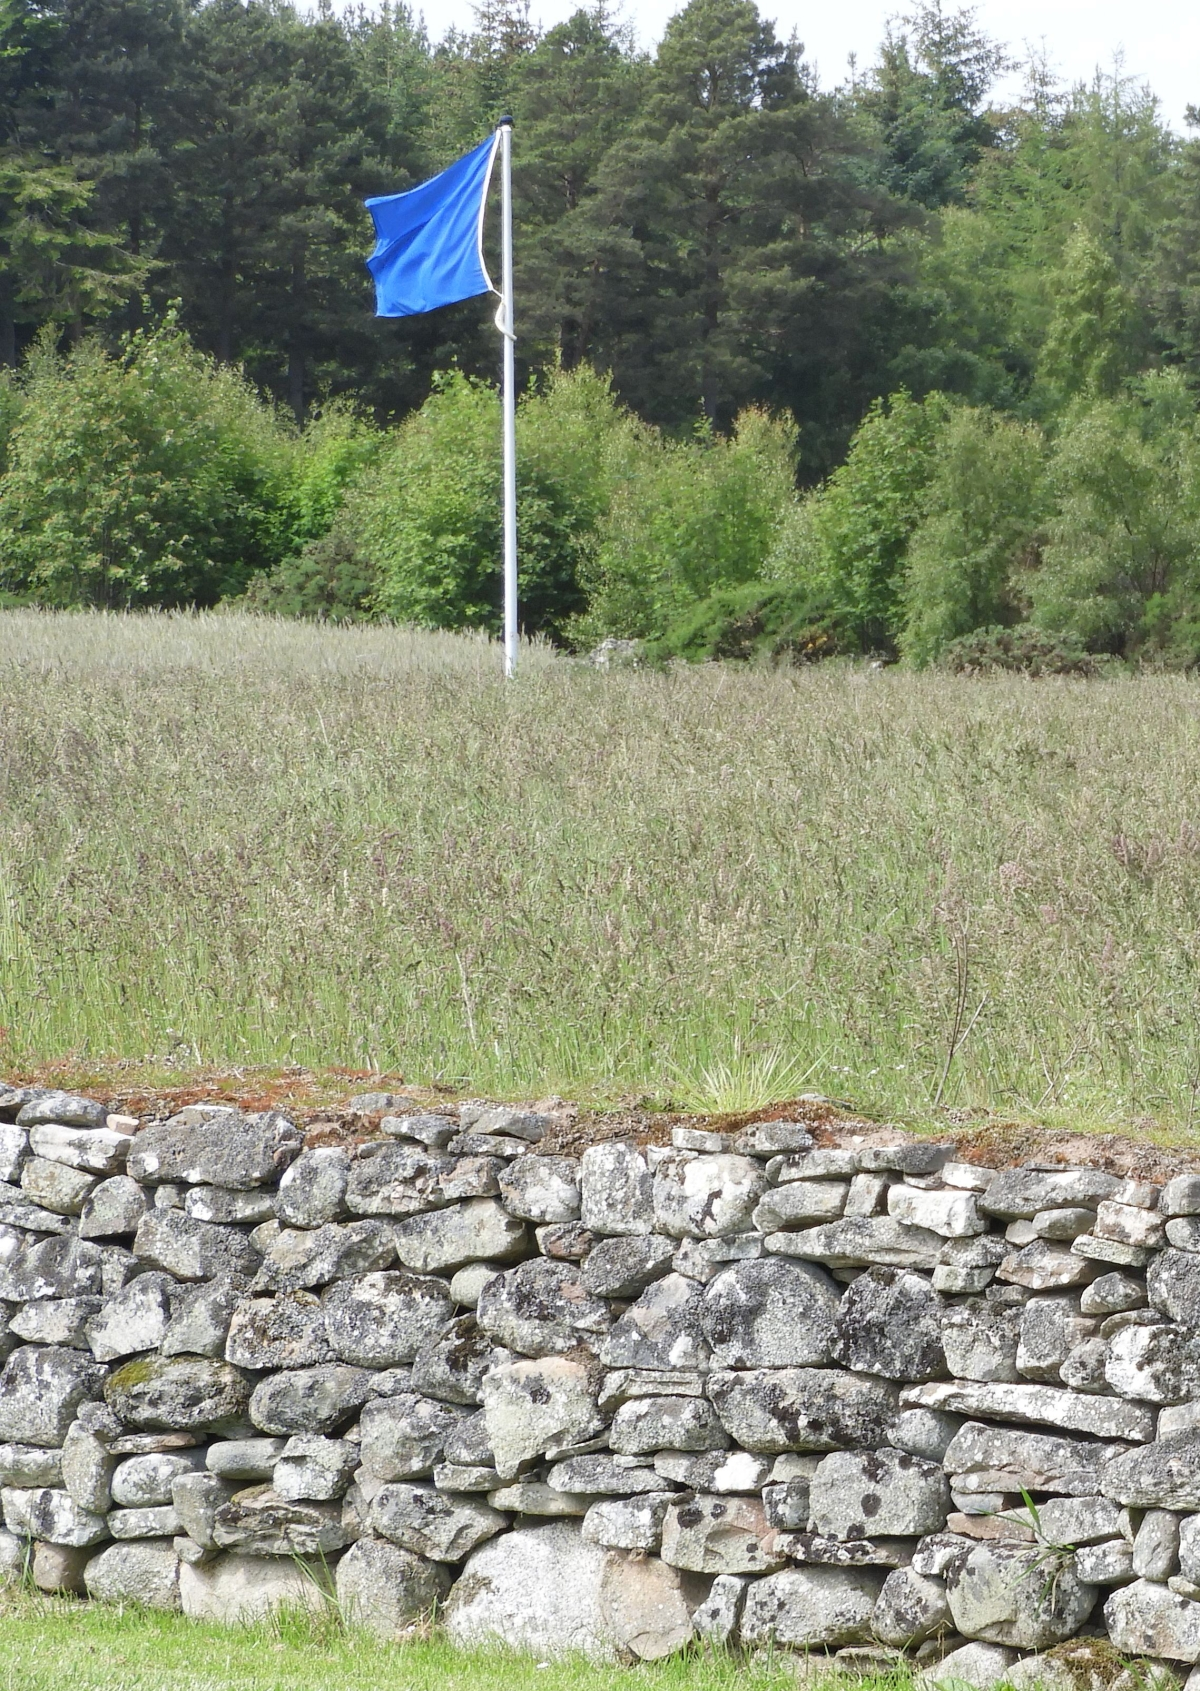 One of the blue flags representing the Jacobite battle lines